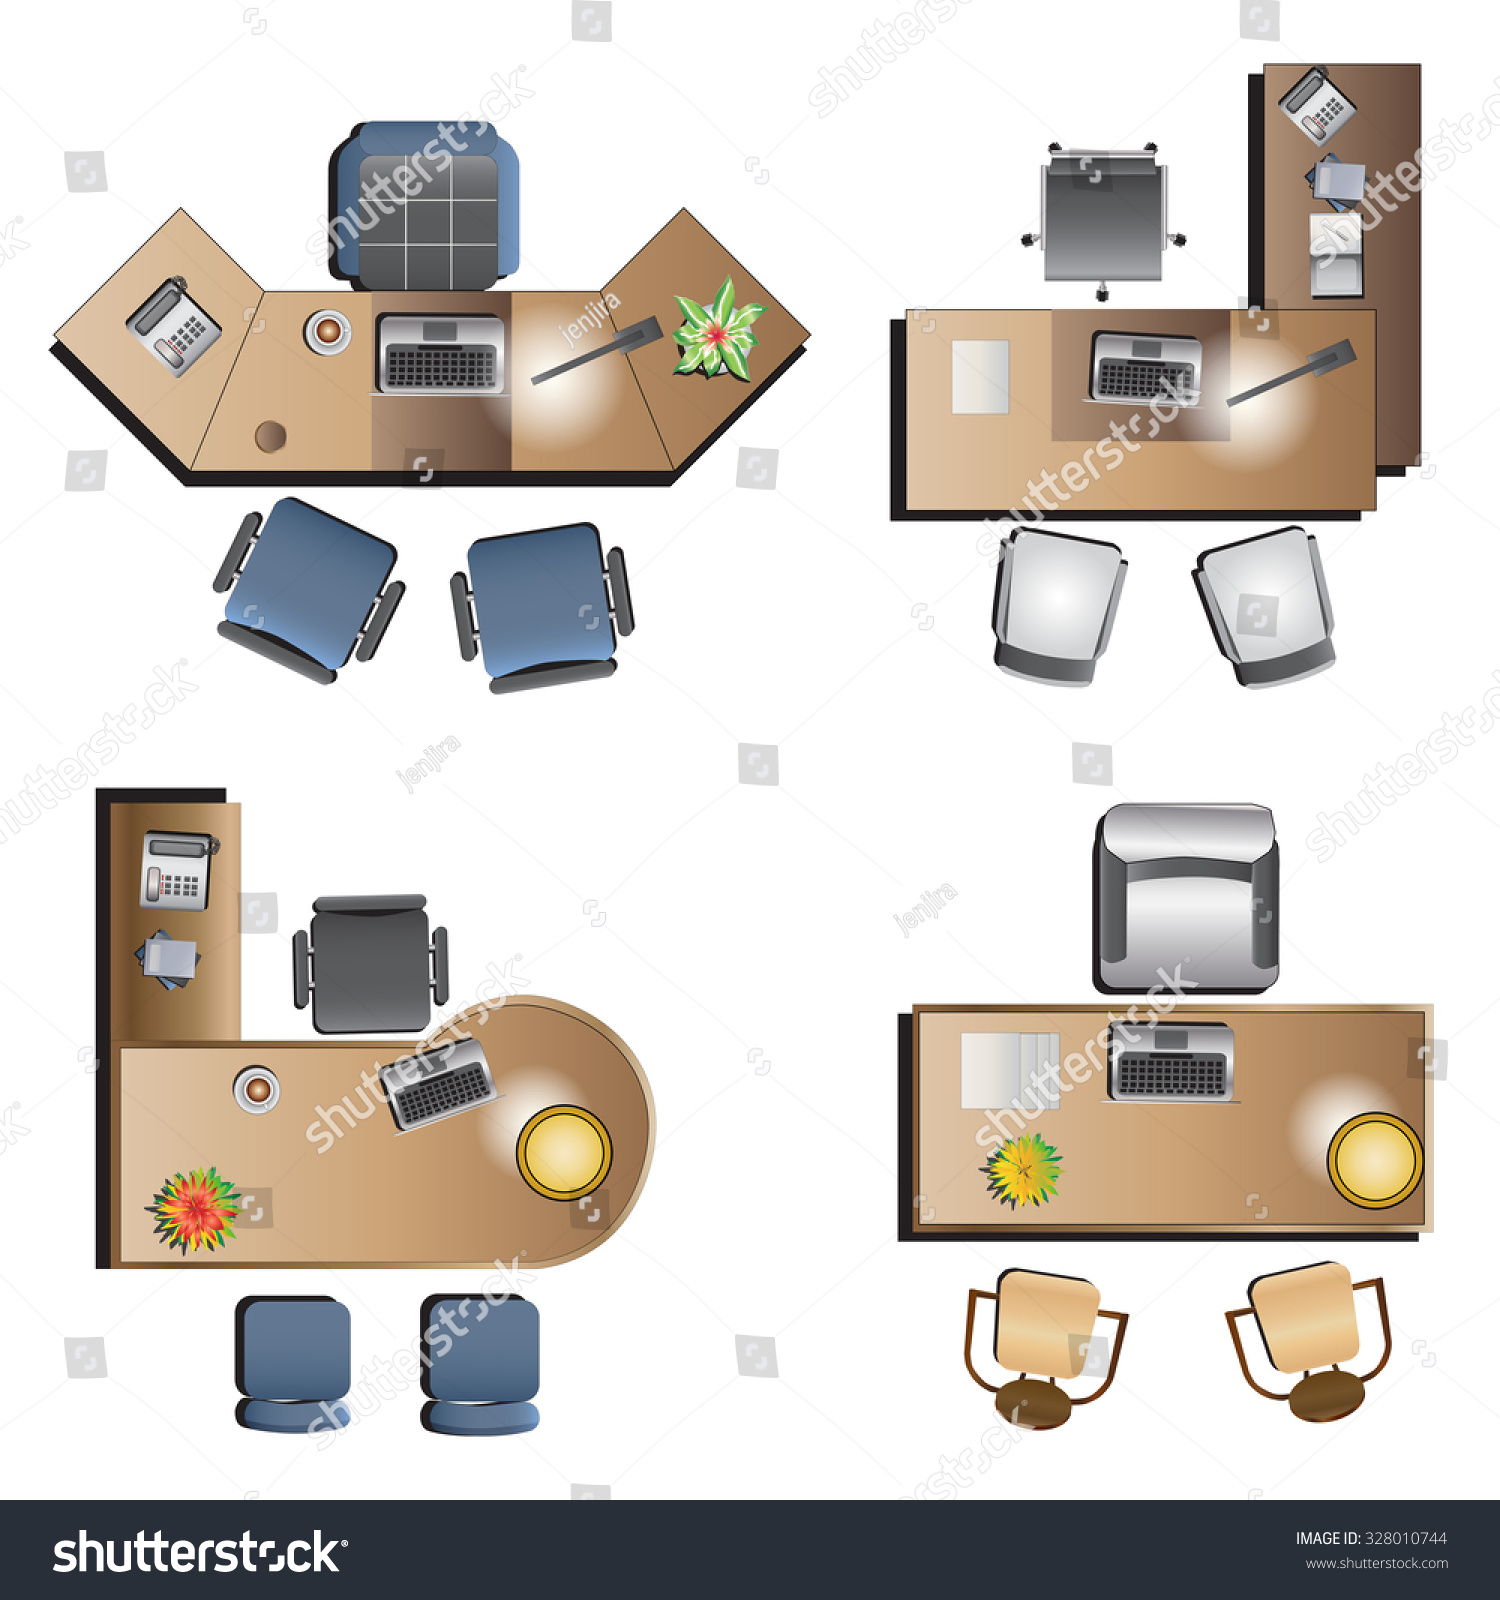 Office Furniture Top View Interior Vector Stock Vector  : stock vector office furniture top view for interior vector illustration 328010744 from www.shutterstock.com size 1500 x 1600 jpeg 408kB